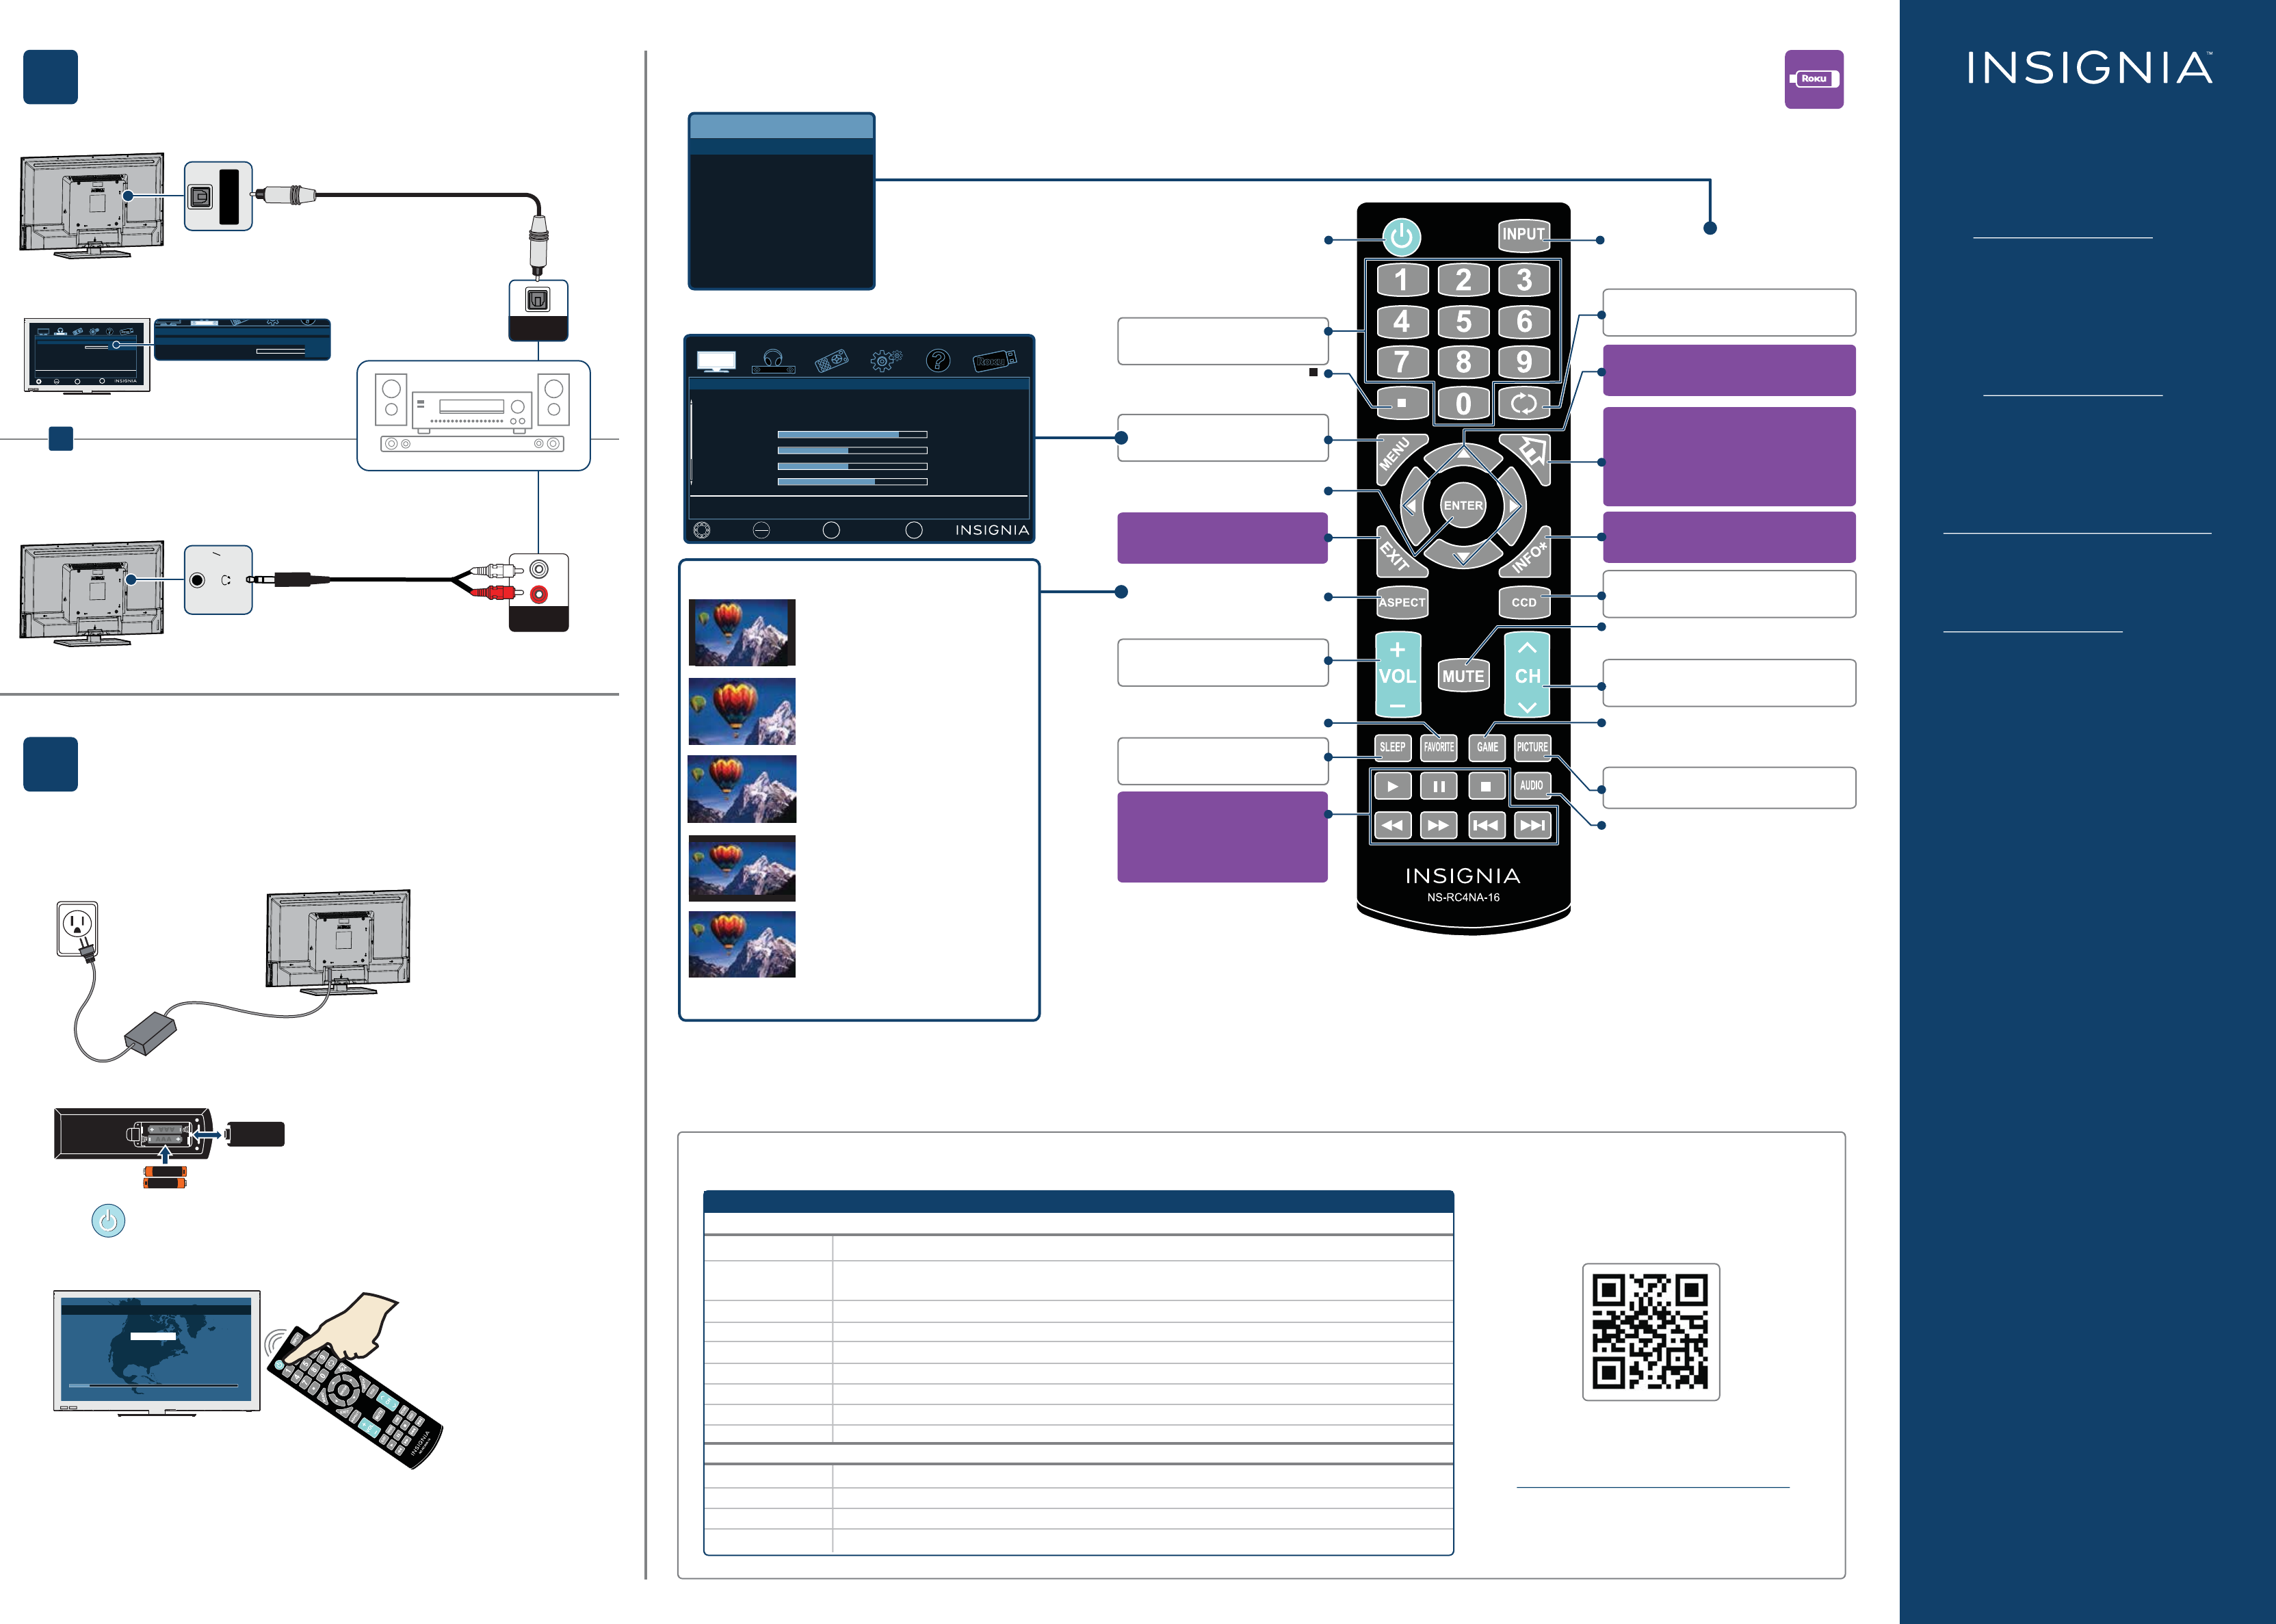 page 2 of insignia car satellite tv system ns 32d312na15 user guide rh caraudio manualsonline com insignia lcd tv user manual Insignia Roku TV Remote Manual